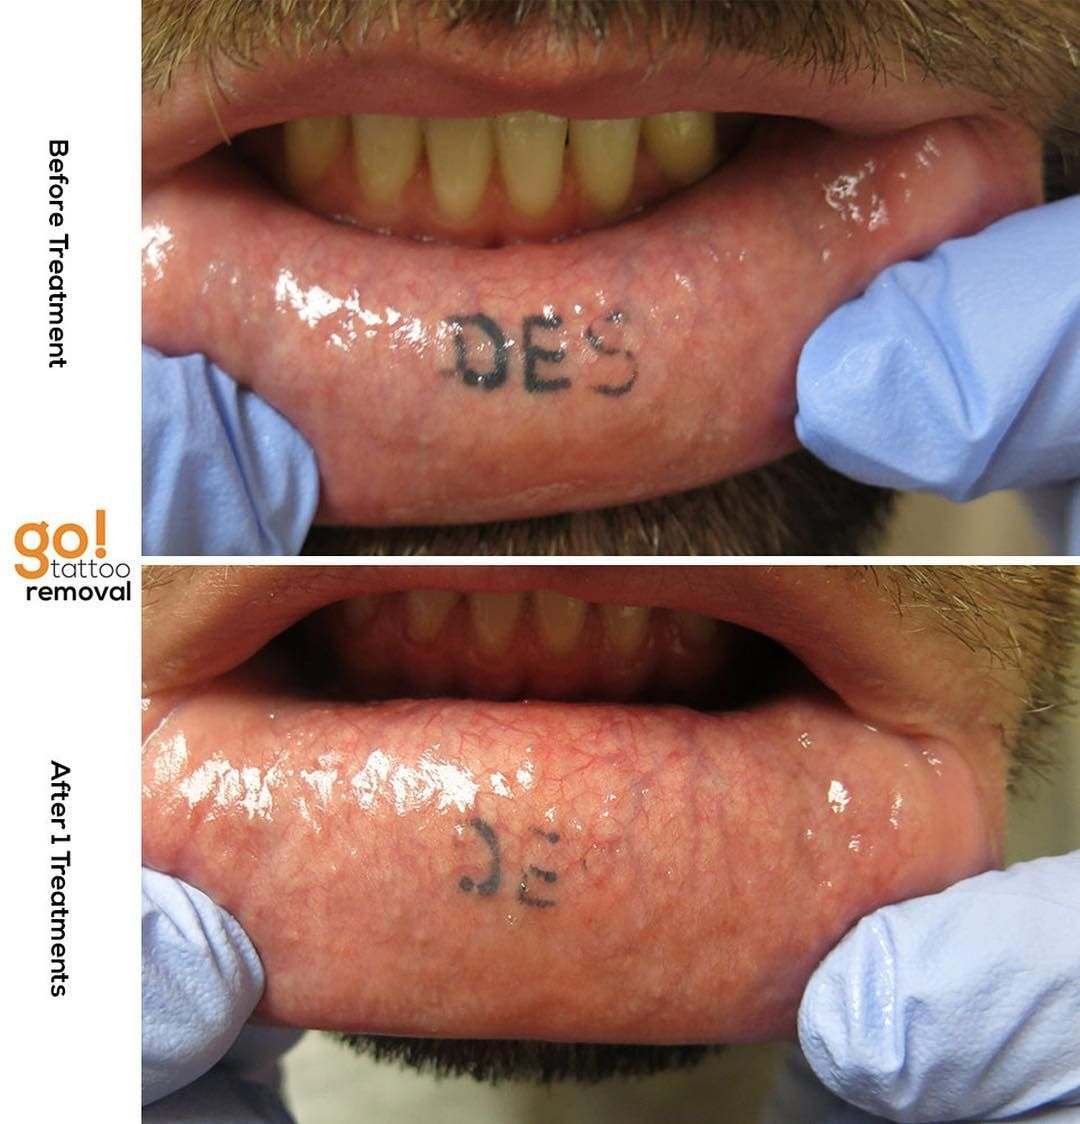 Inner Lower Lip Tattoos Rarely Stay And Often Fade On Their Own